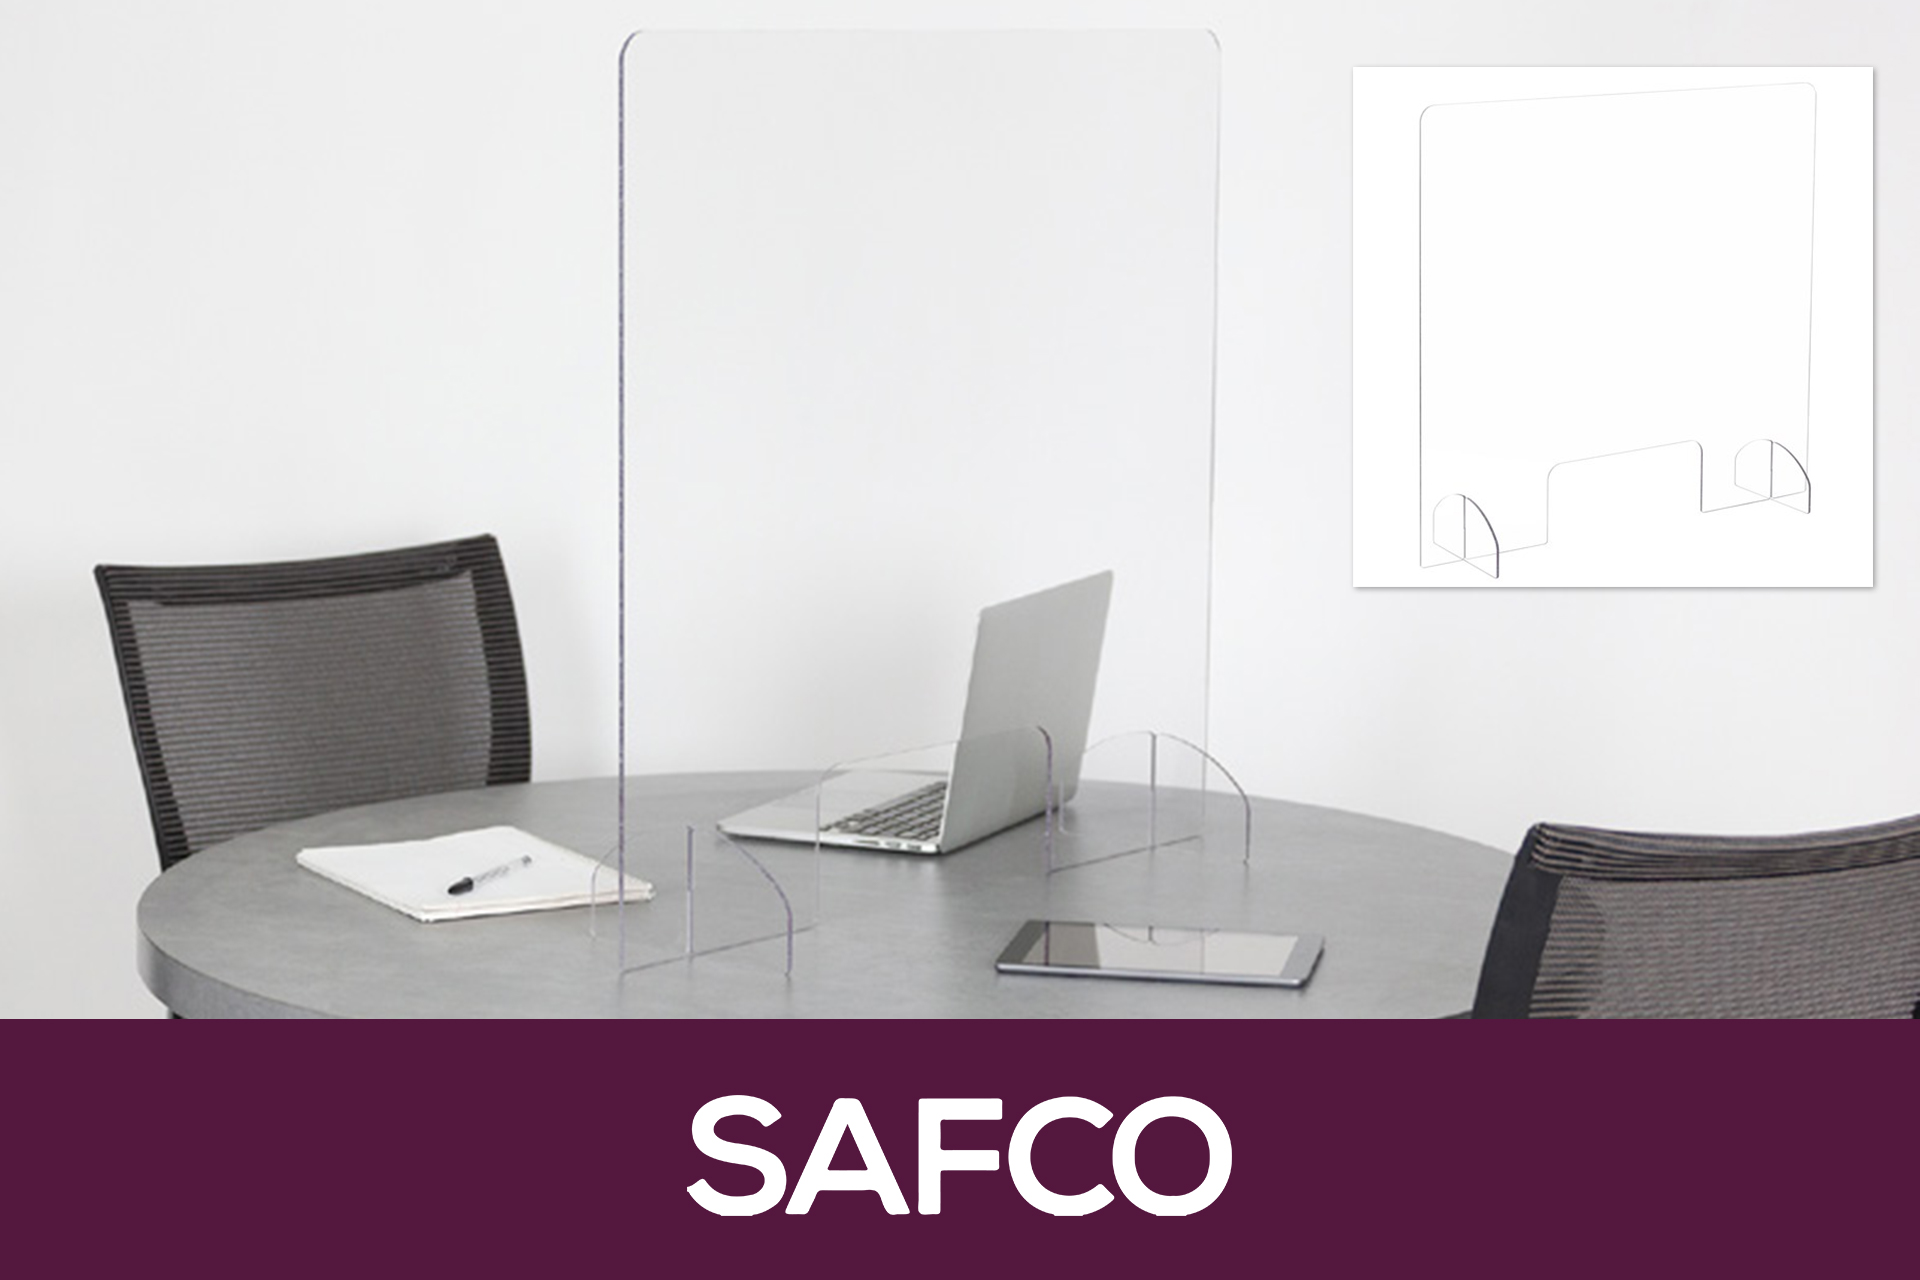 SAFCO Freestanding Sneeze Guard Products For Physical Distancing